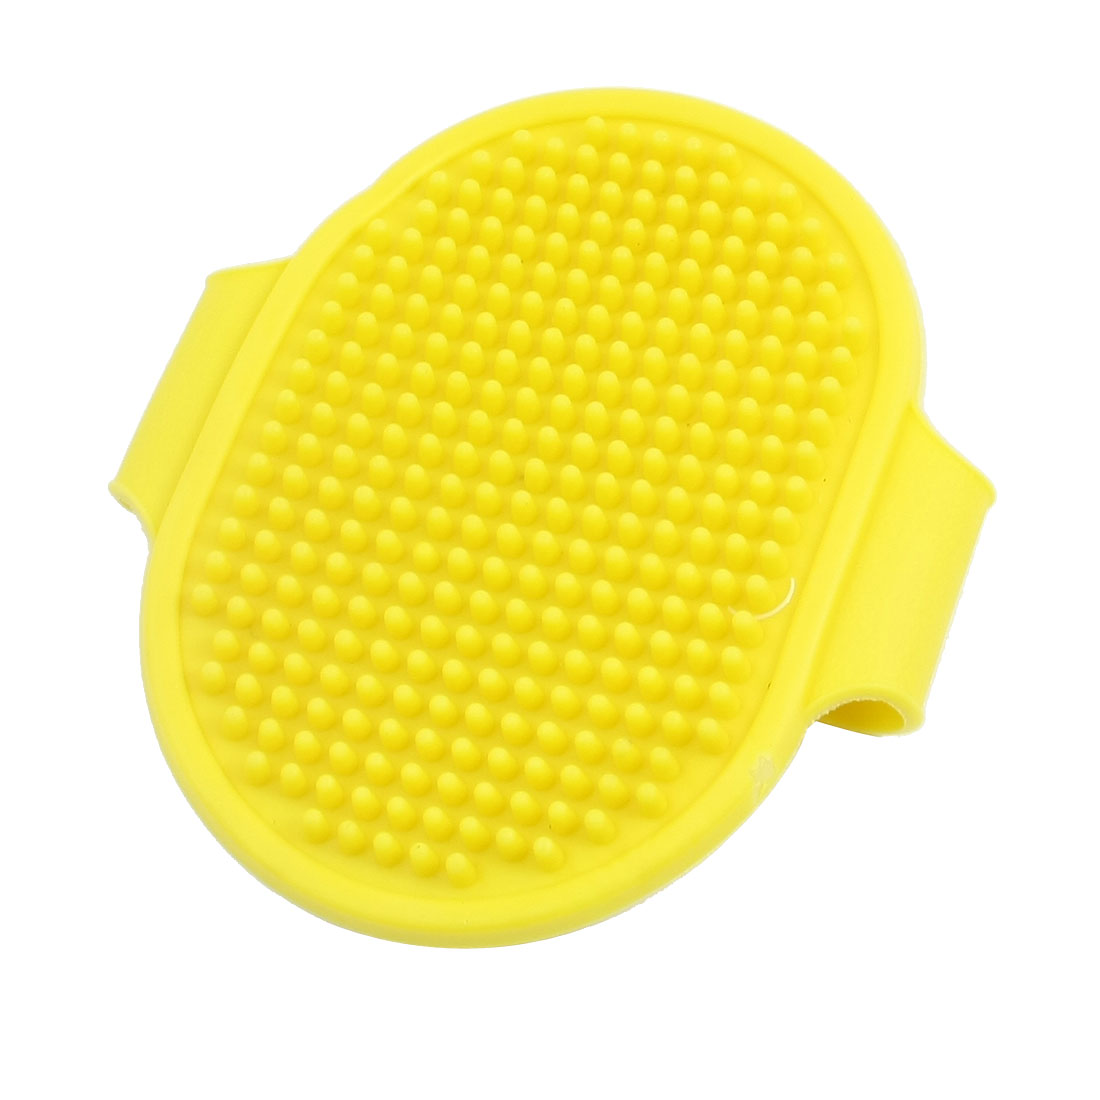 Pet Cat Dog Rabbit Rubber Adjustable Massage Grooming Bath Glove Hair Fur Brush Comb Yellow